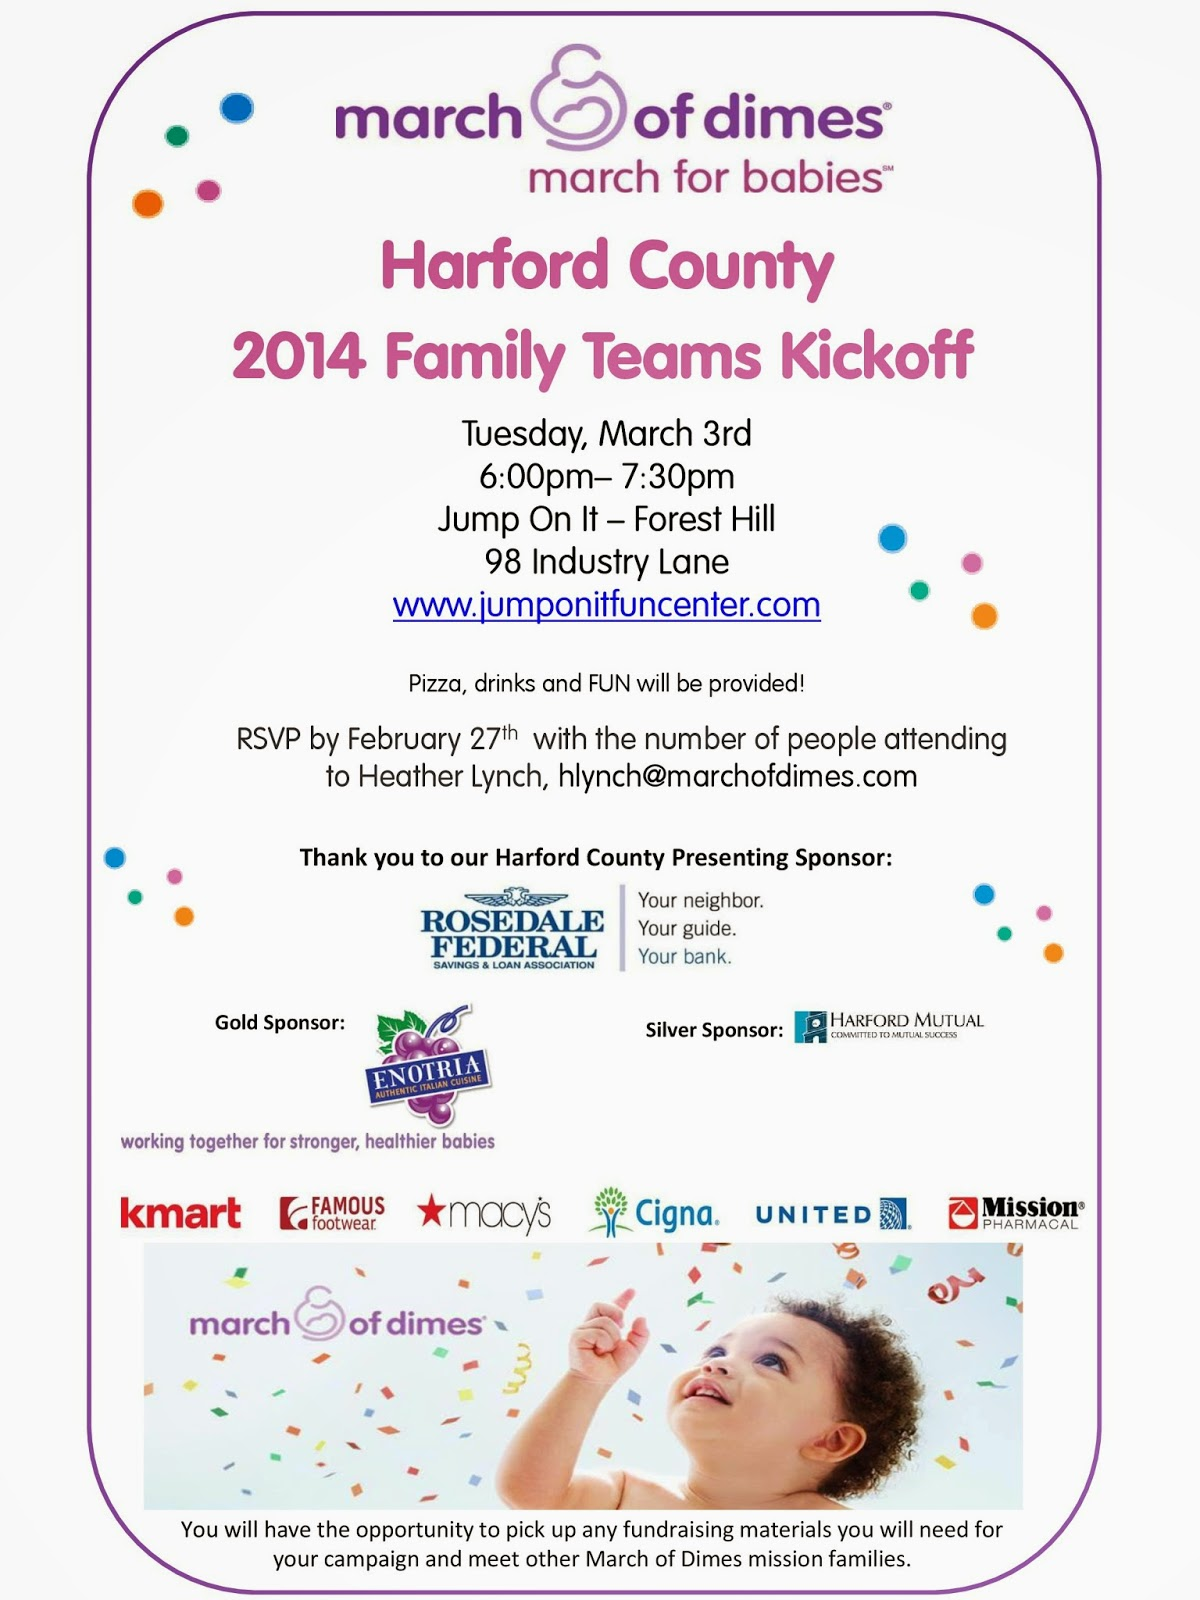 harford county jewish single women Providing a consolidated web site for single men and women to help find a particular singles club, group or organization which, suit their personal needs and preferences in their local area.